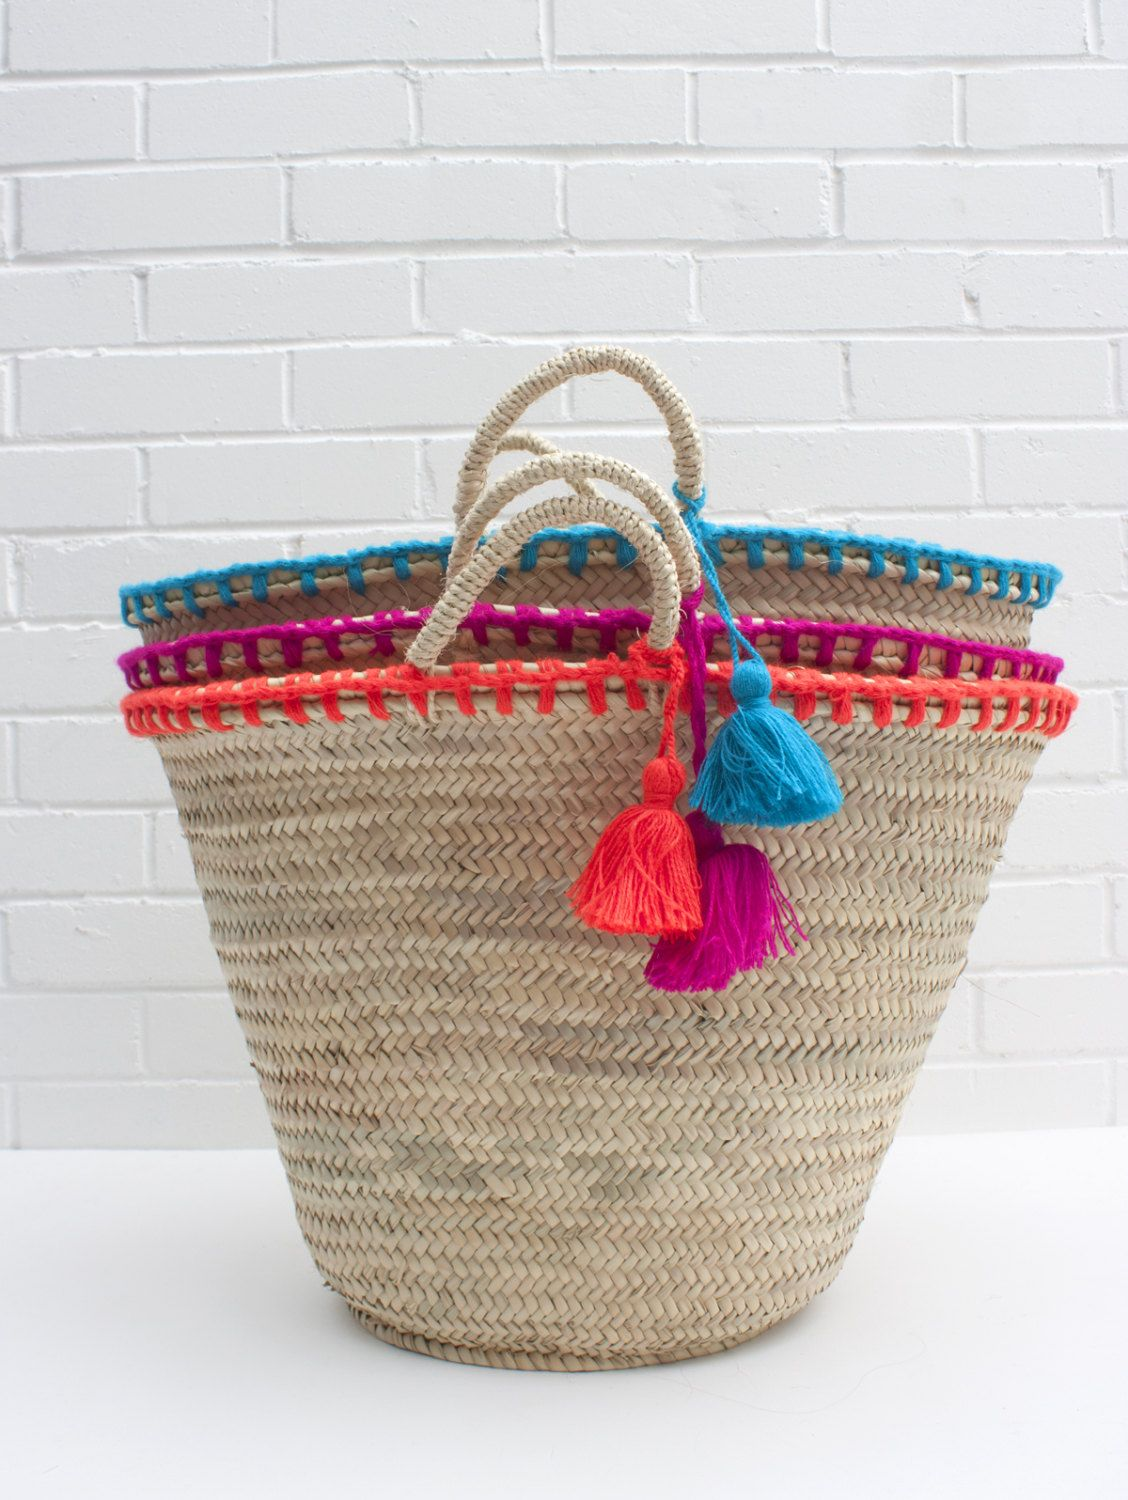 Mexicana Market Basket by LoveBohemians on Etsy